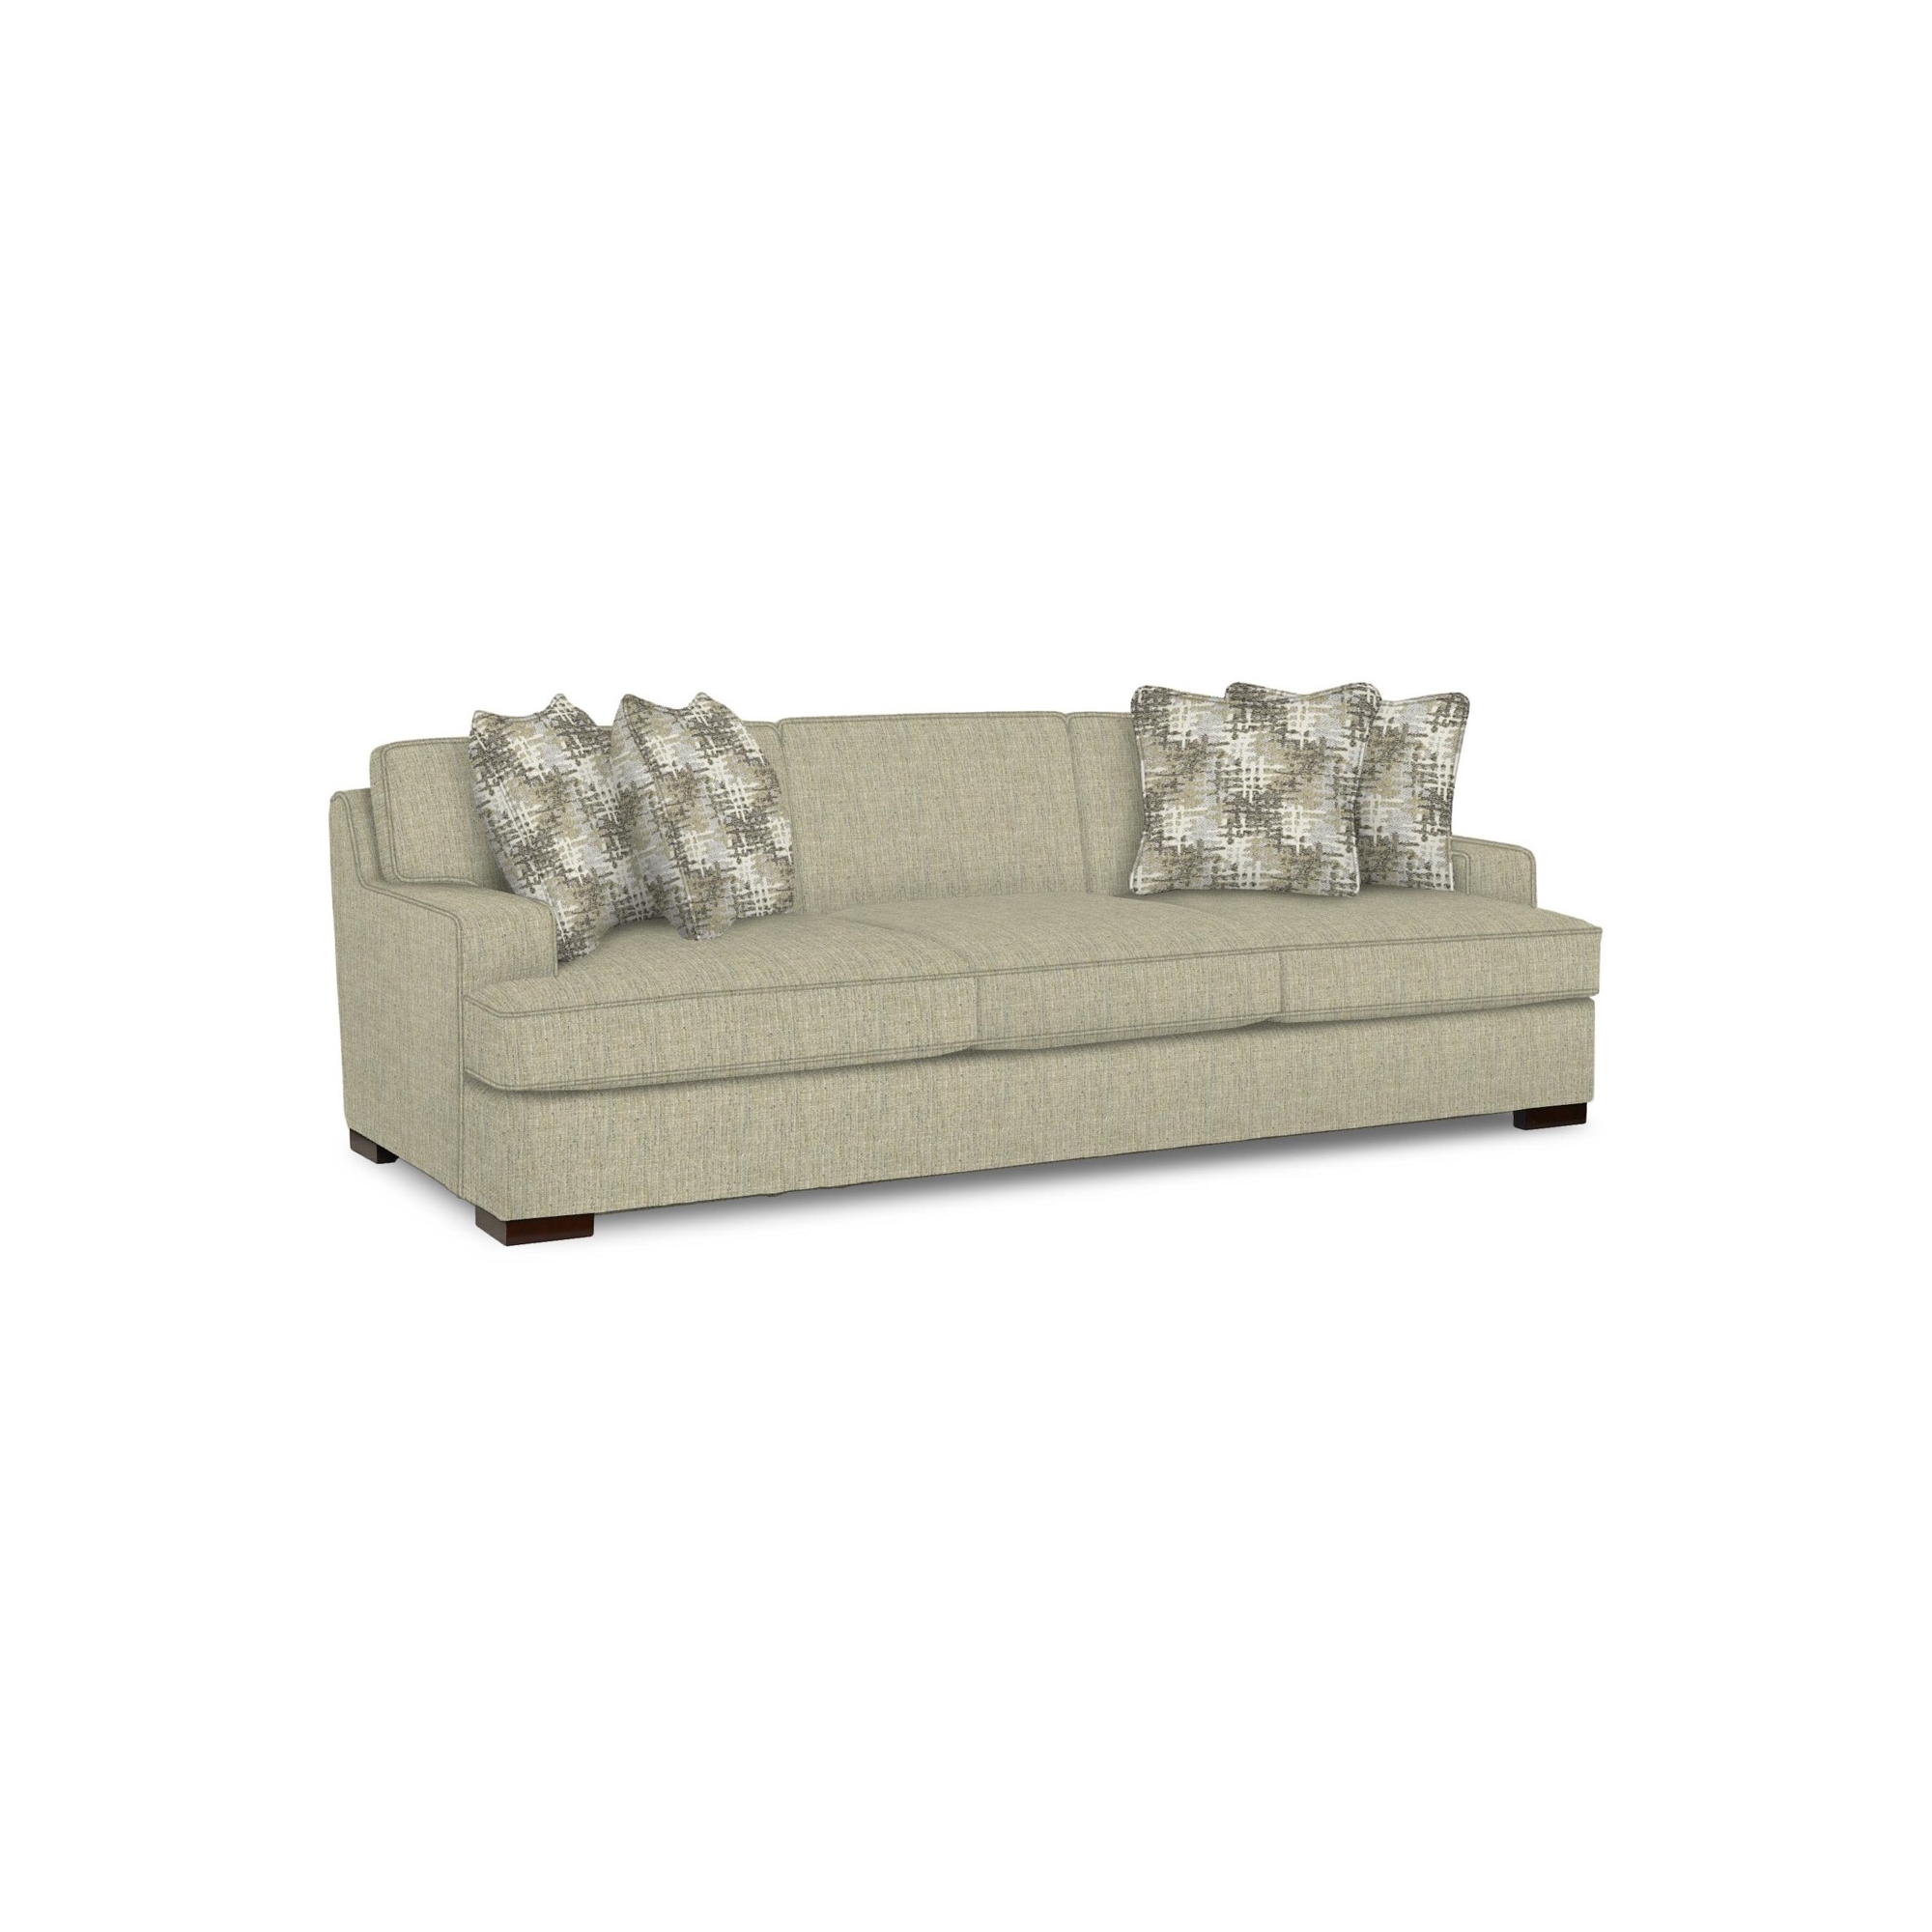 Reese Sofa 102 Inch Find The